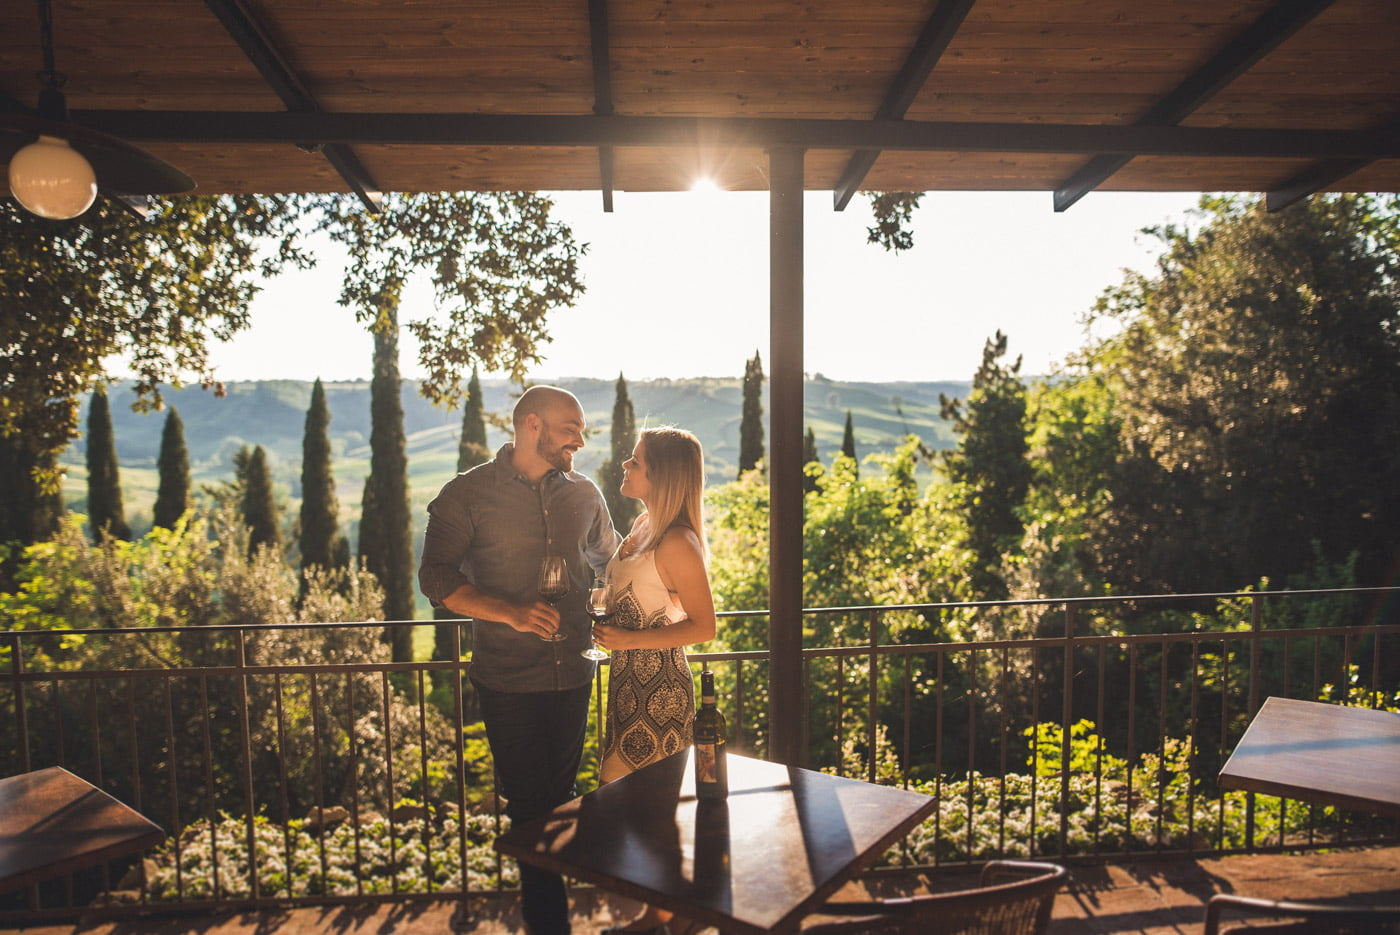 027-Engagement-Tuscany